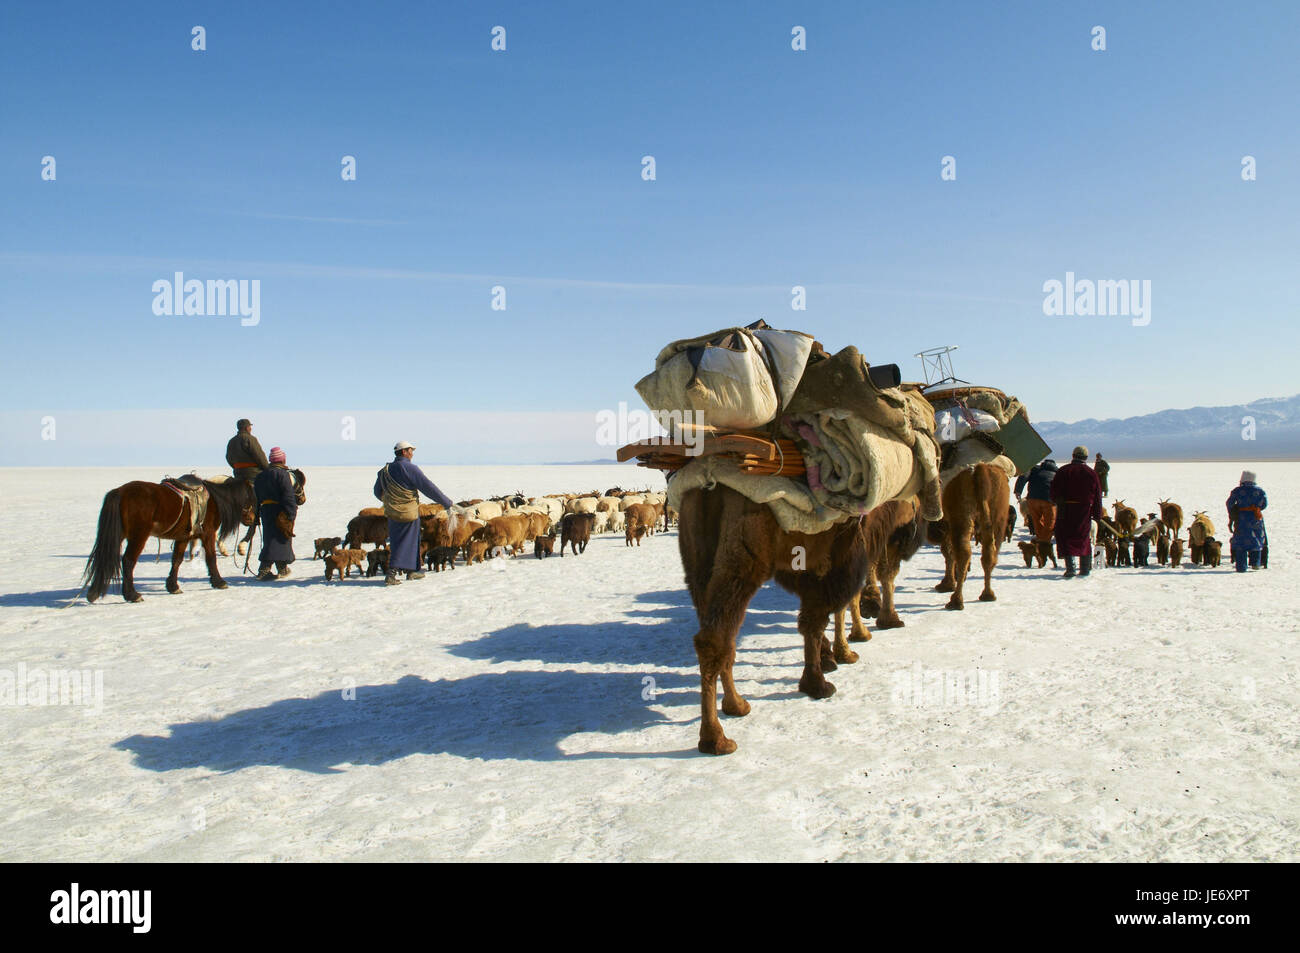 Mongolia, Khovd province, nomad, herd of cattle, camels, hike, steppe, winter, - Stock Image